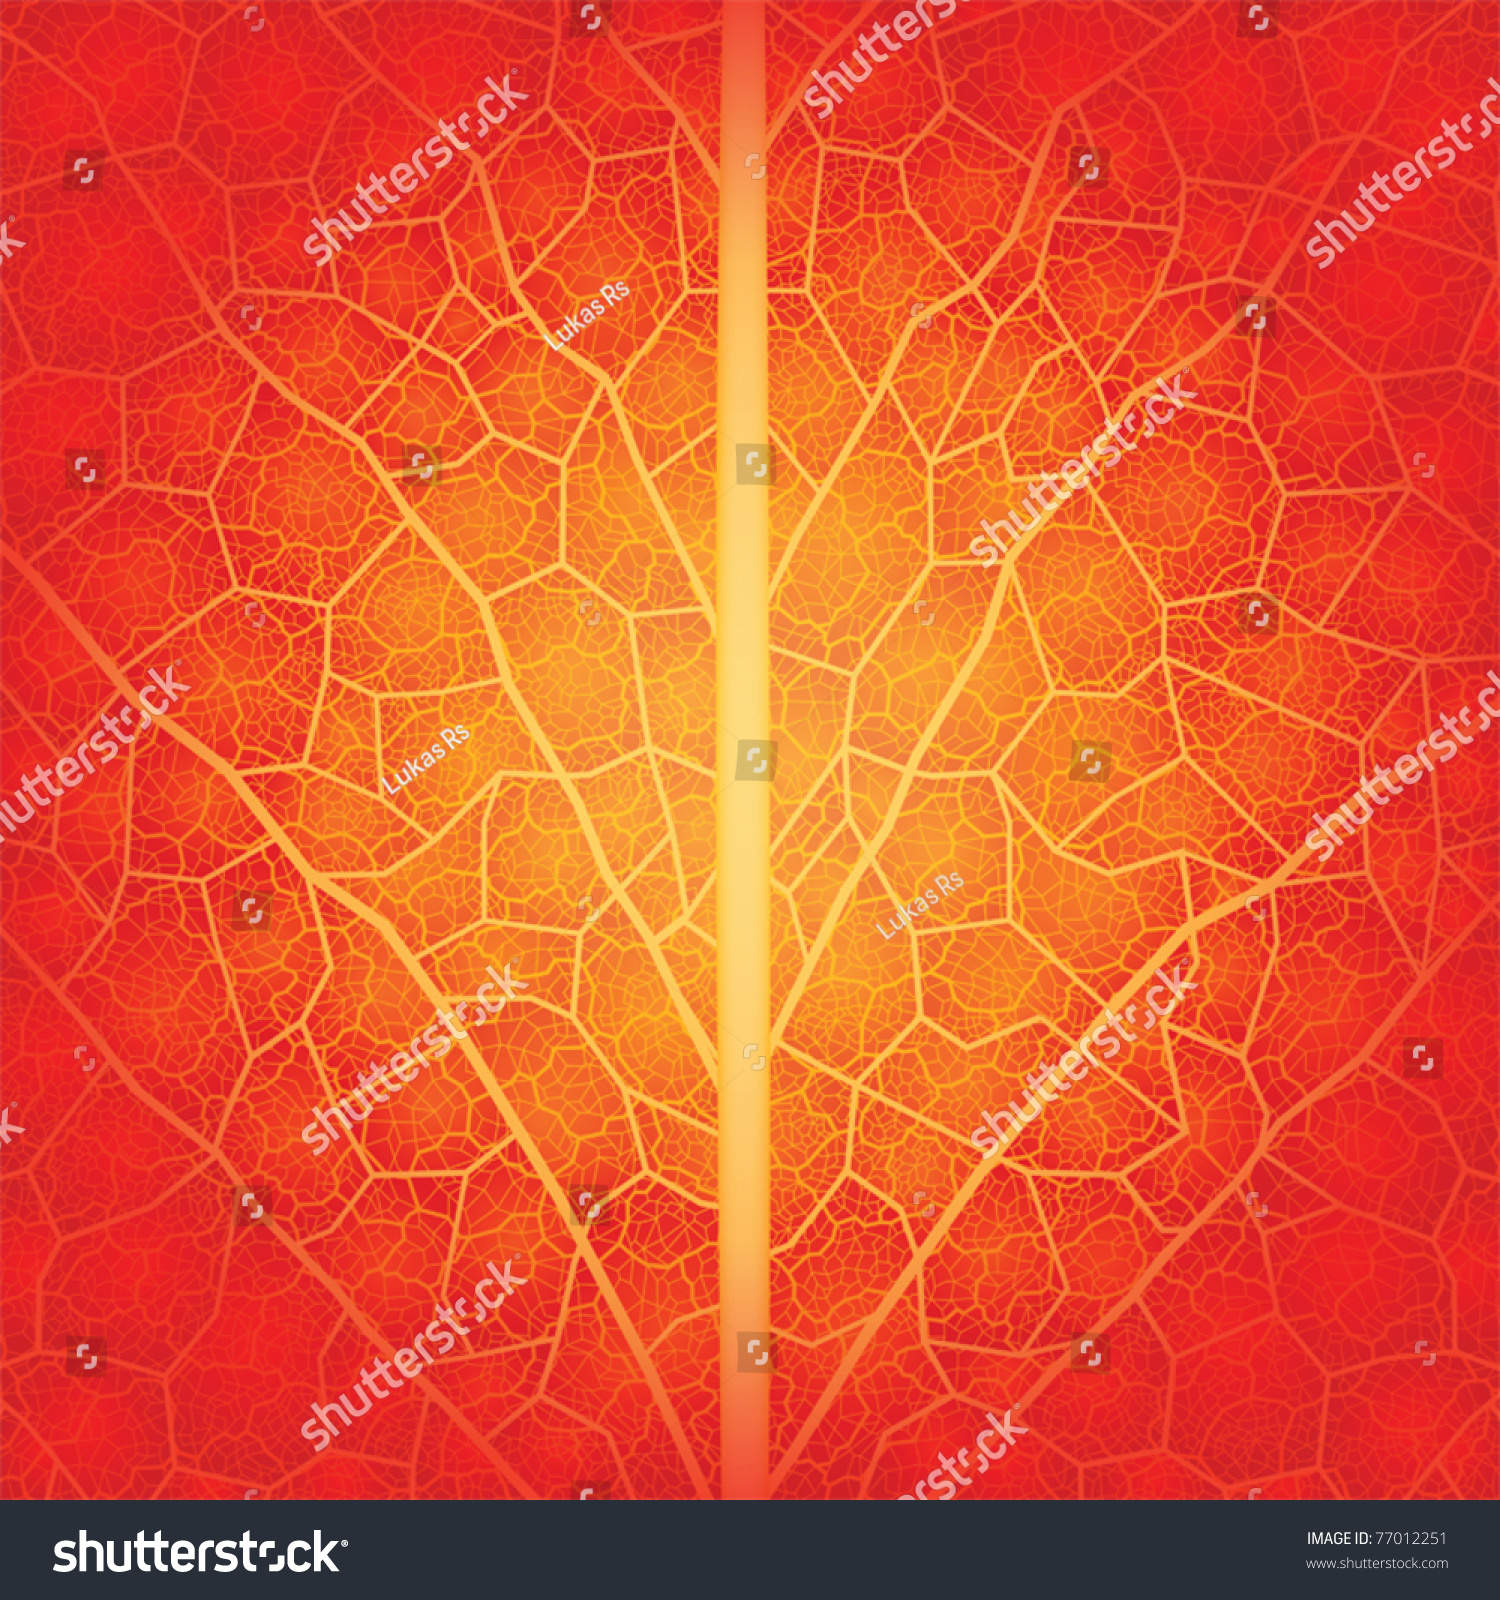 Creative background with leaf pattern. Vector drawn manually, without  tracing. File layered.